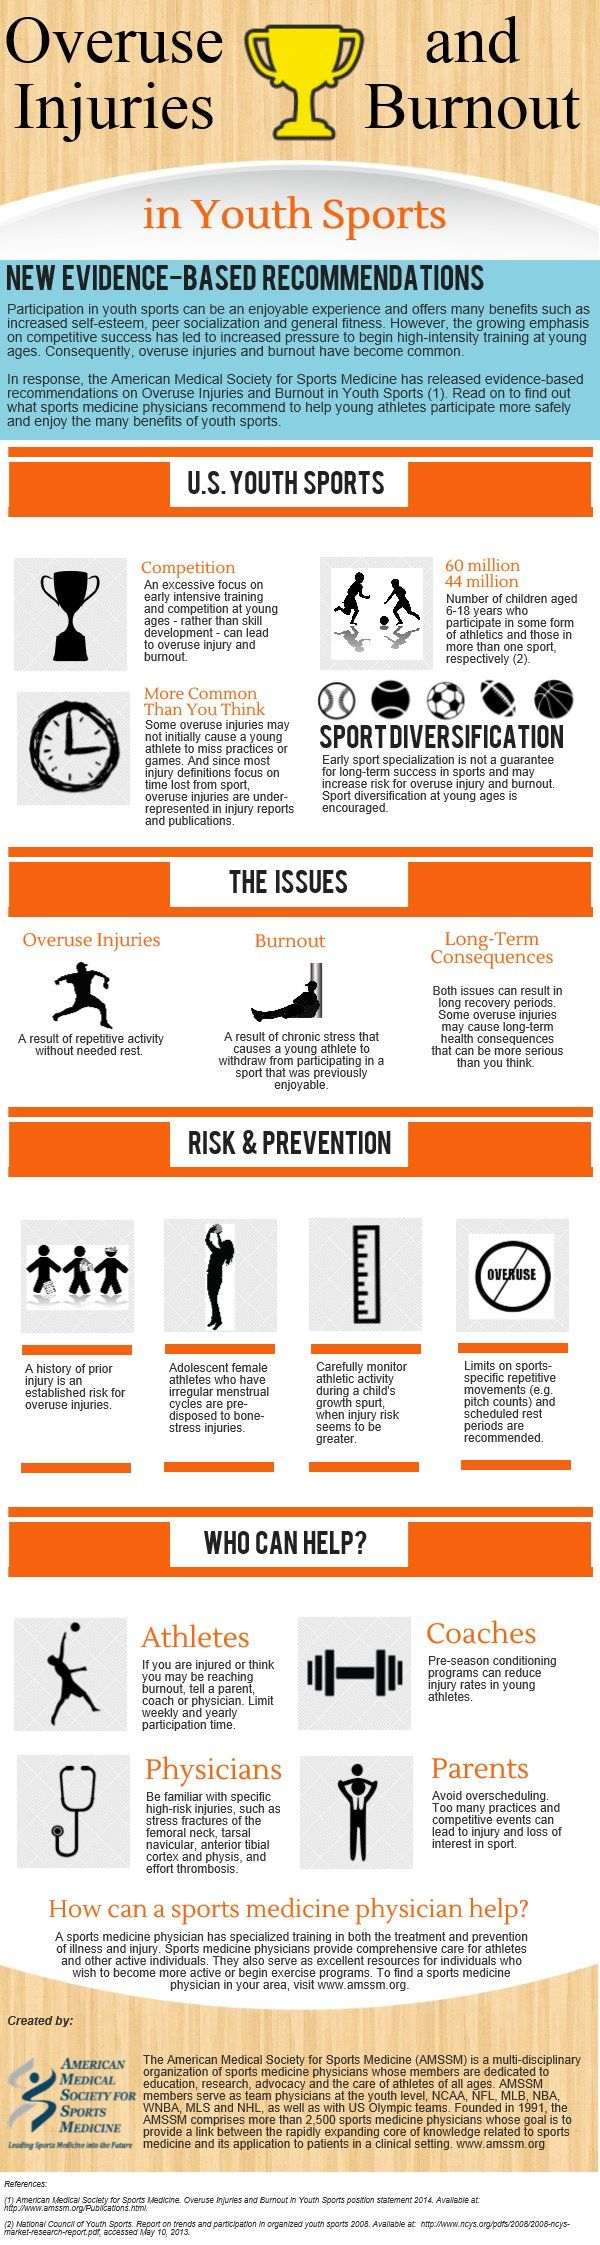 "Smart tips for minimizing ""Overuse Injuries  Burnout in Youth Sports"" from The American Medical Society for Sports Medicine"